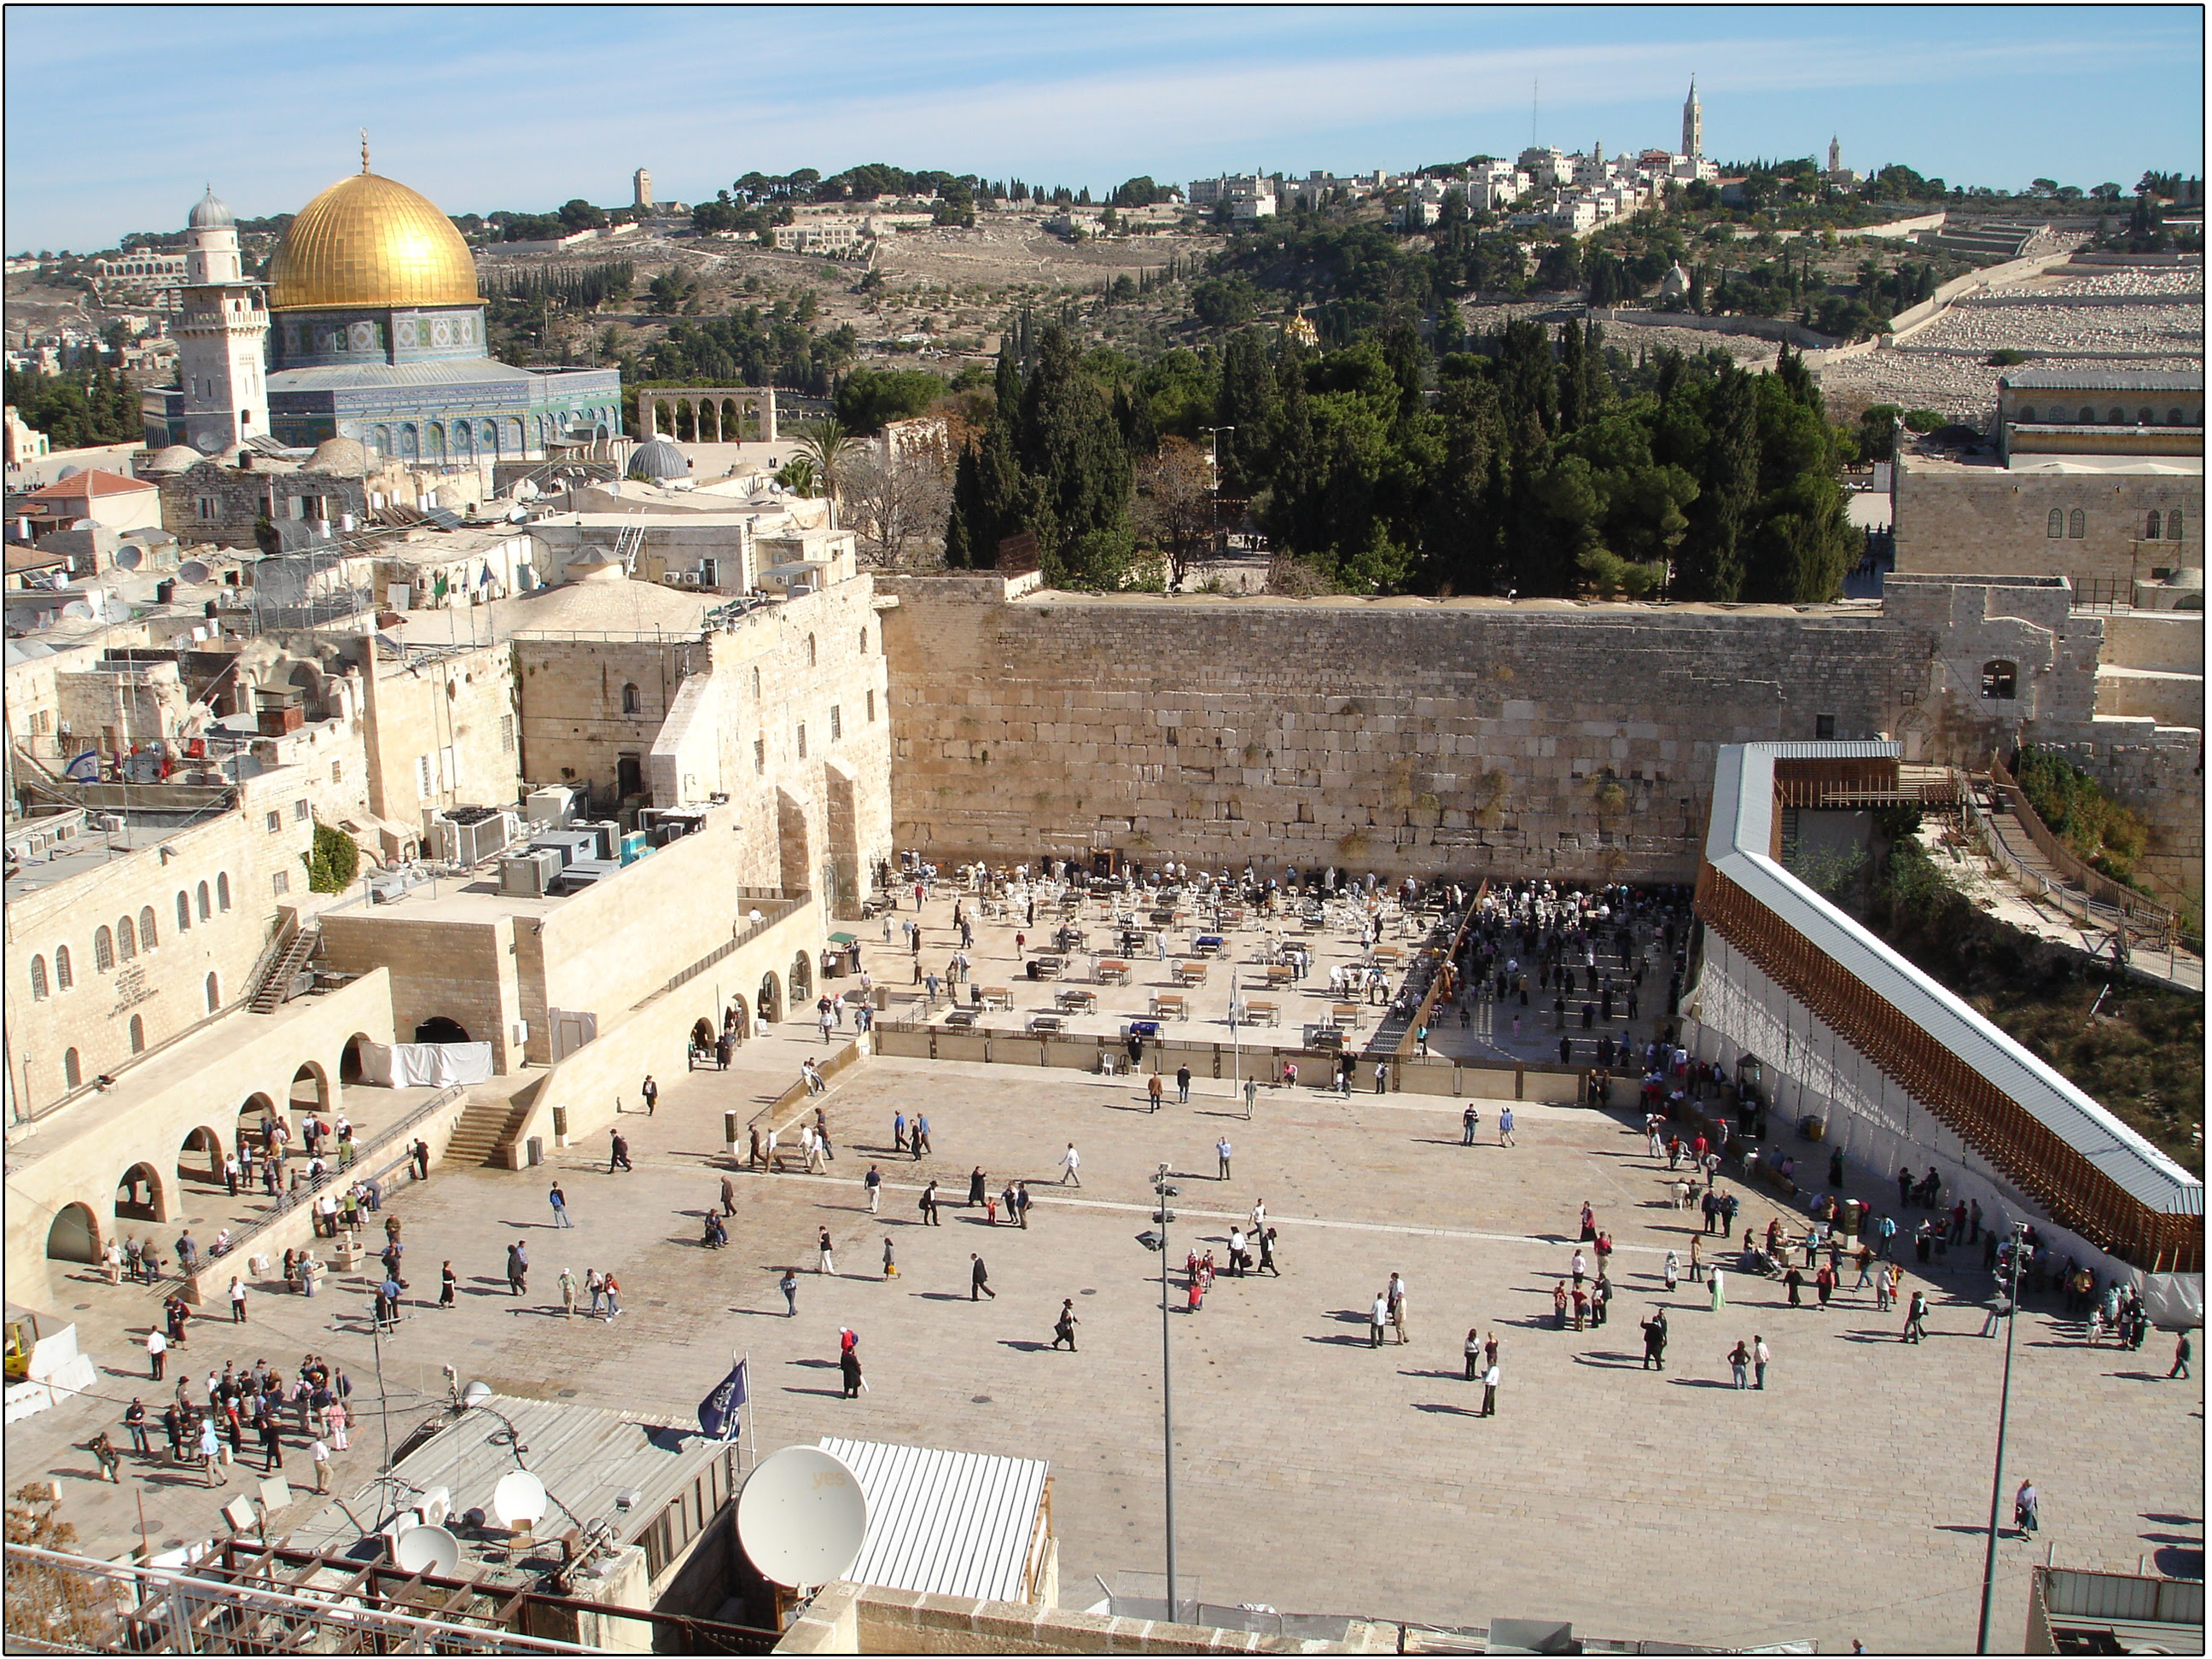 The Dome of the Rock and the Western Wall Plaza (Wiki Commons)